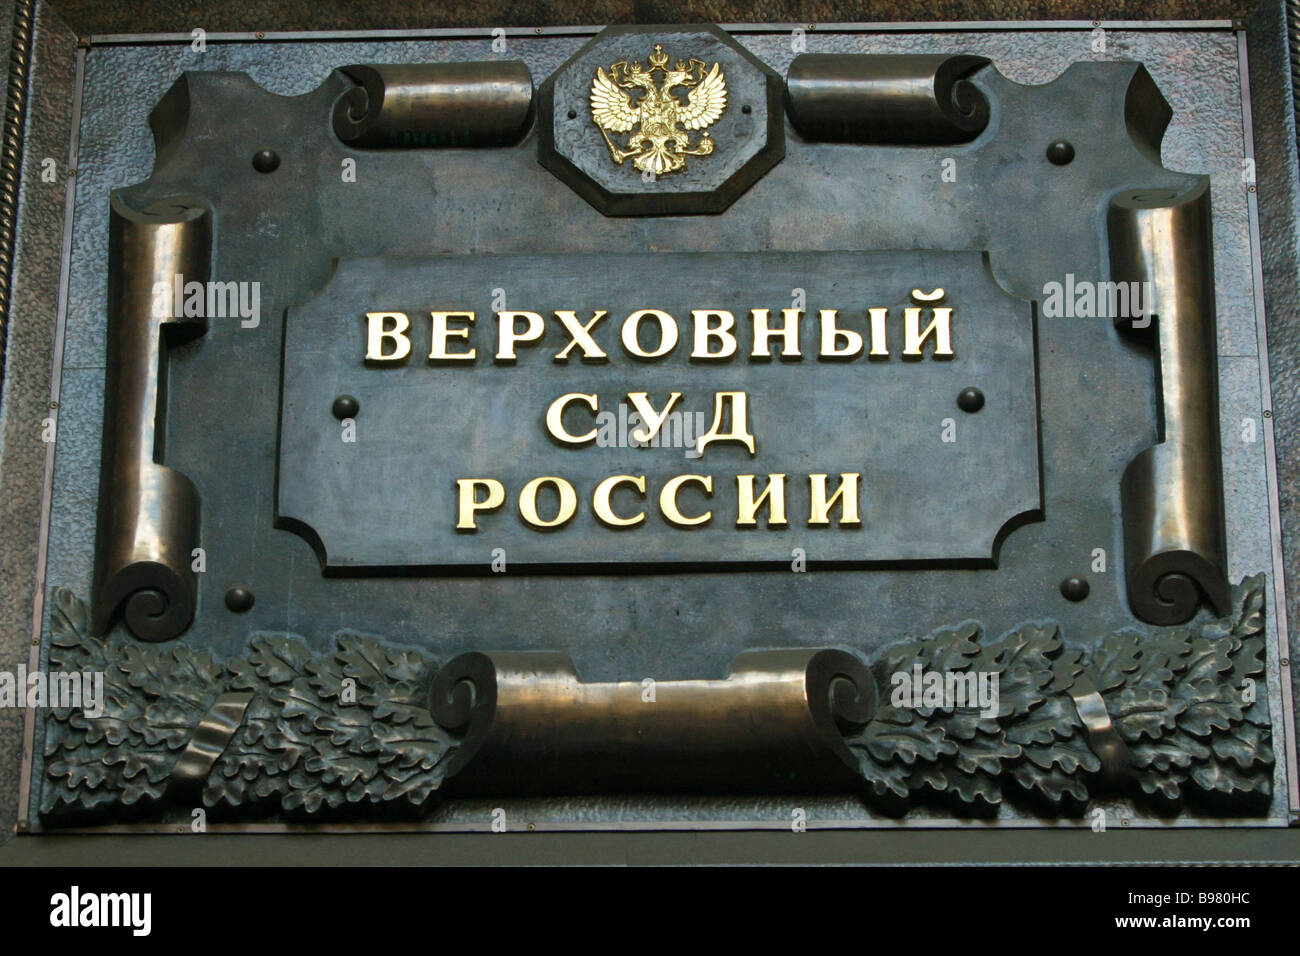 Supreme Court of the Russian Federation - Stock Image